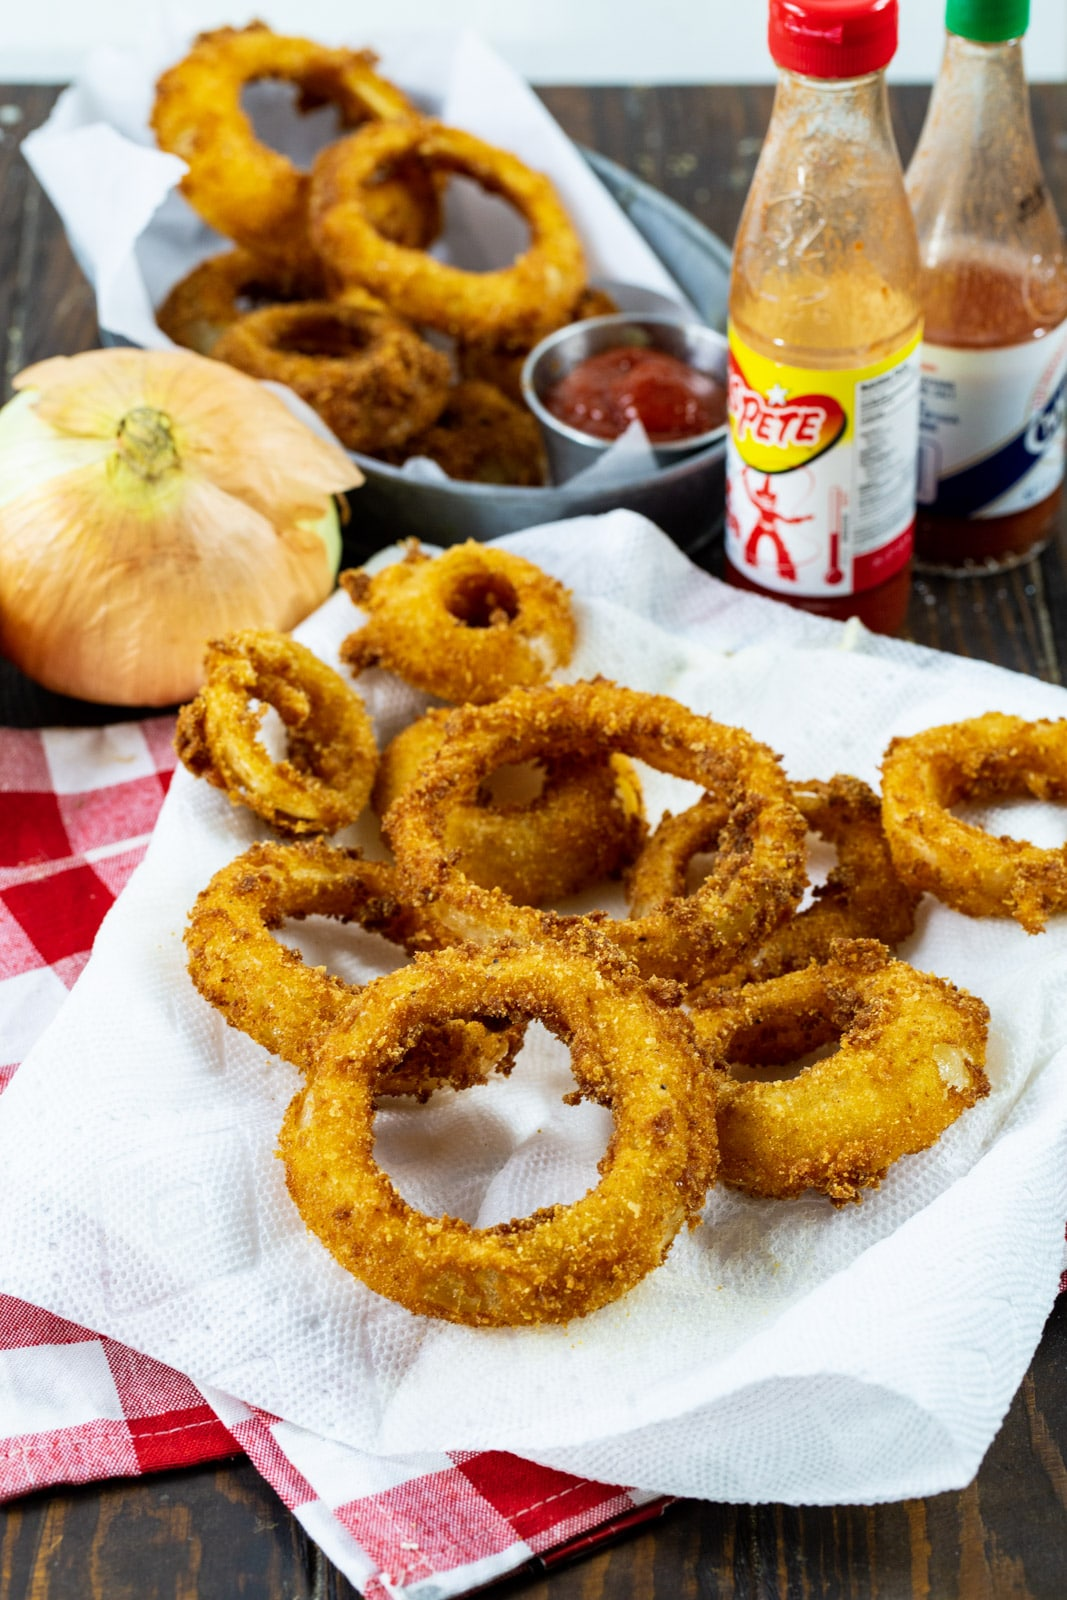 Crispy Spicy Fried Onion Rings and 2 bottles of hot sauce.